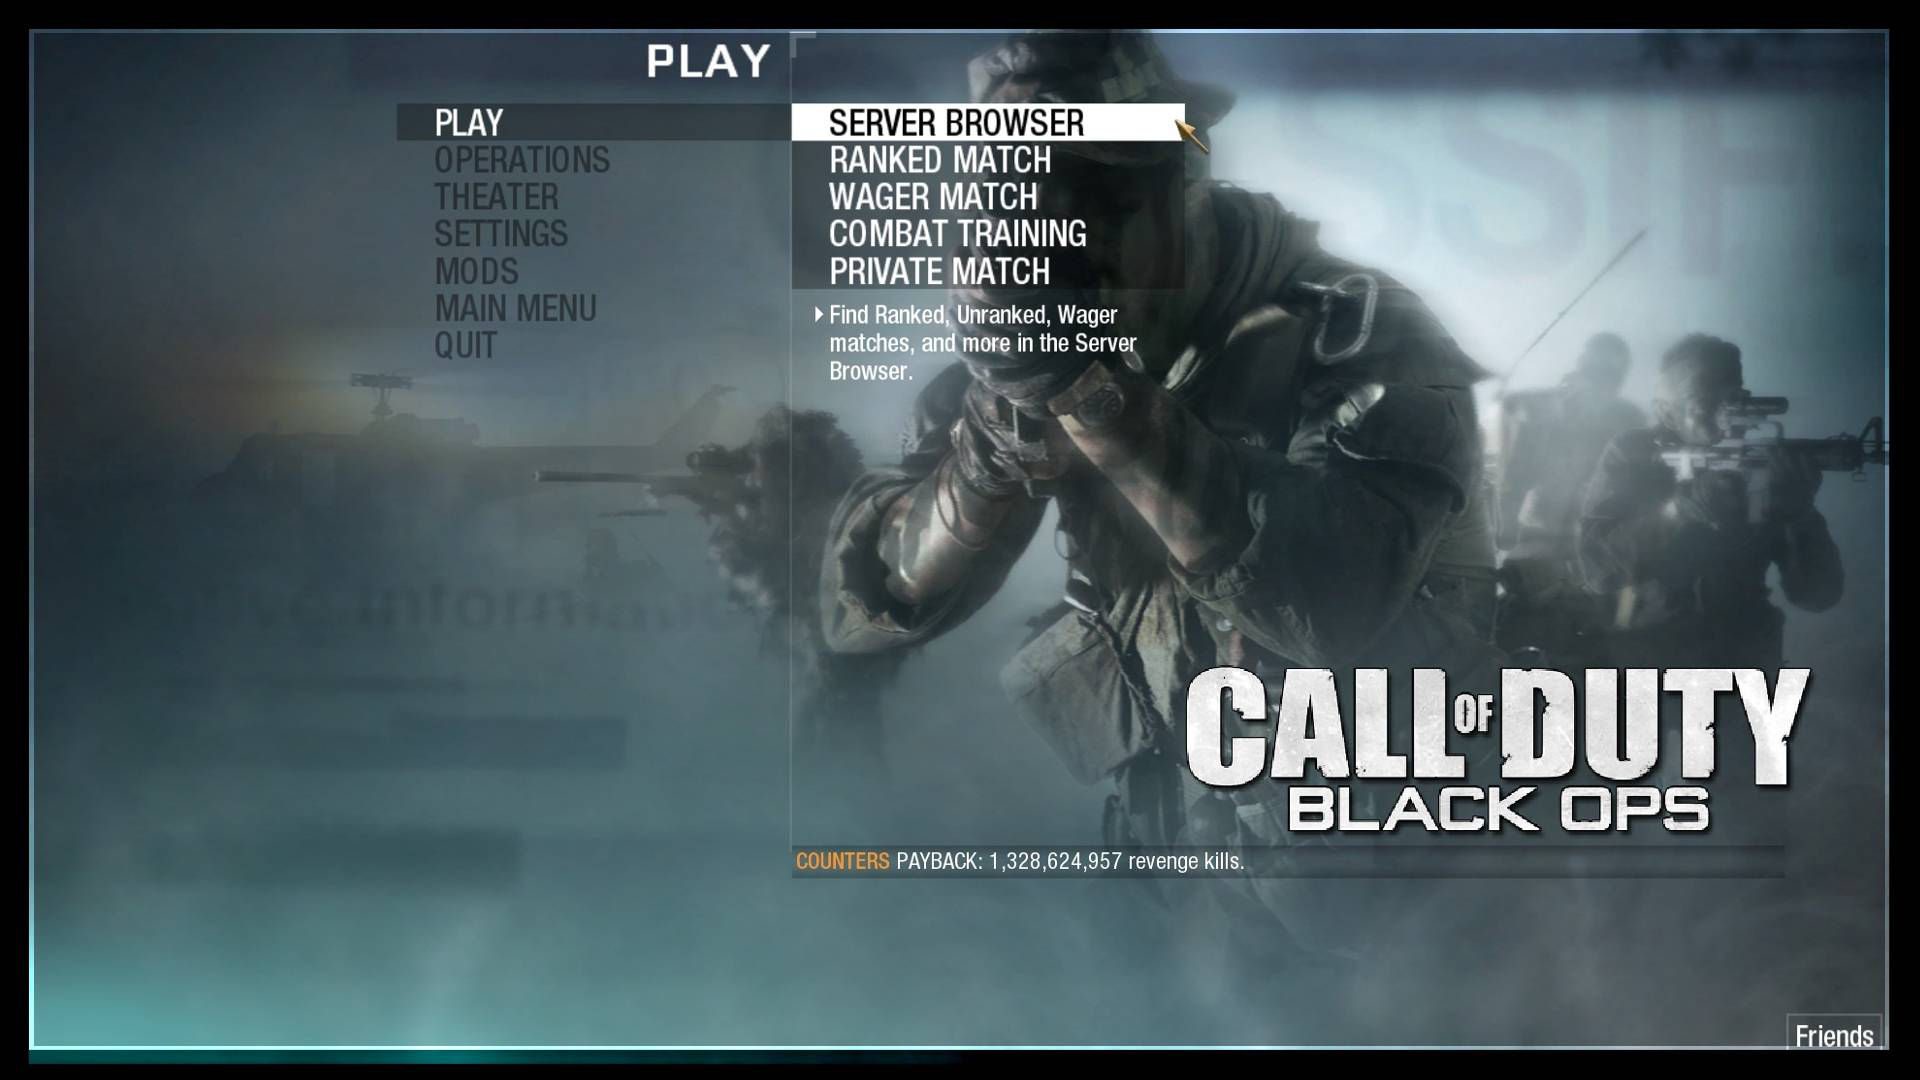 Call of Duty 7 Black Ops Donma Sorunu